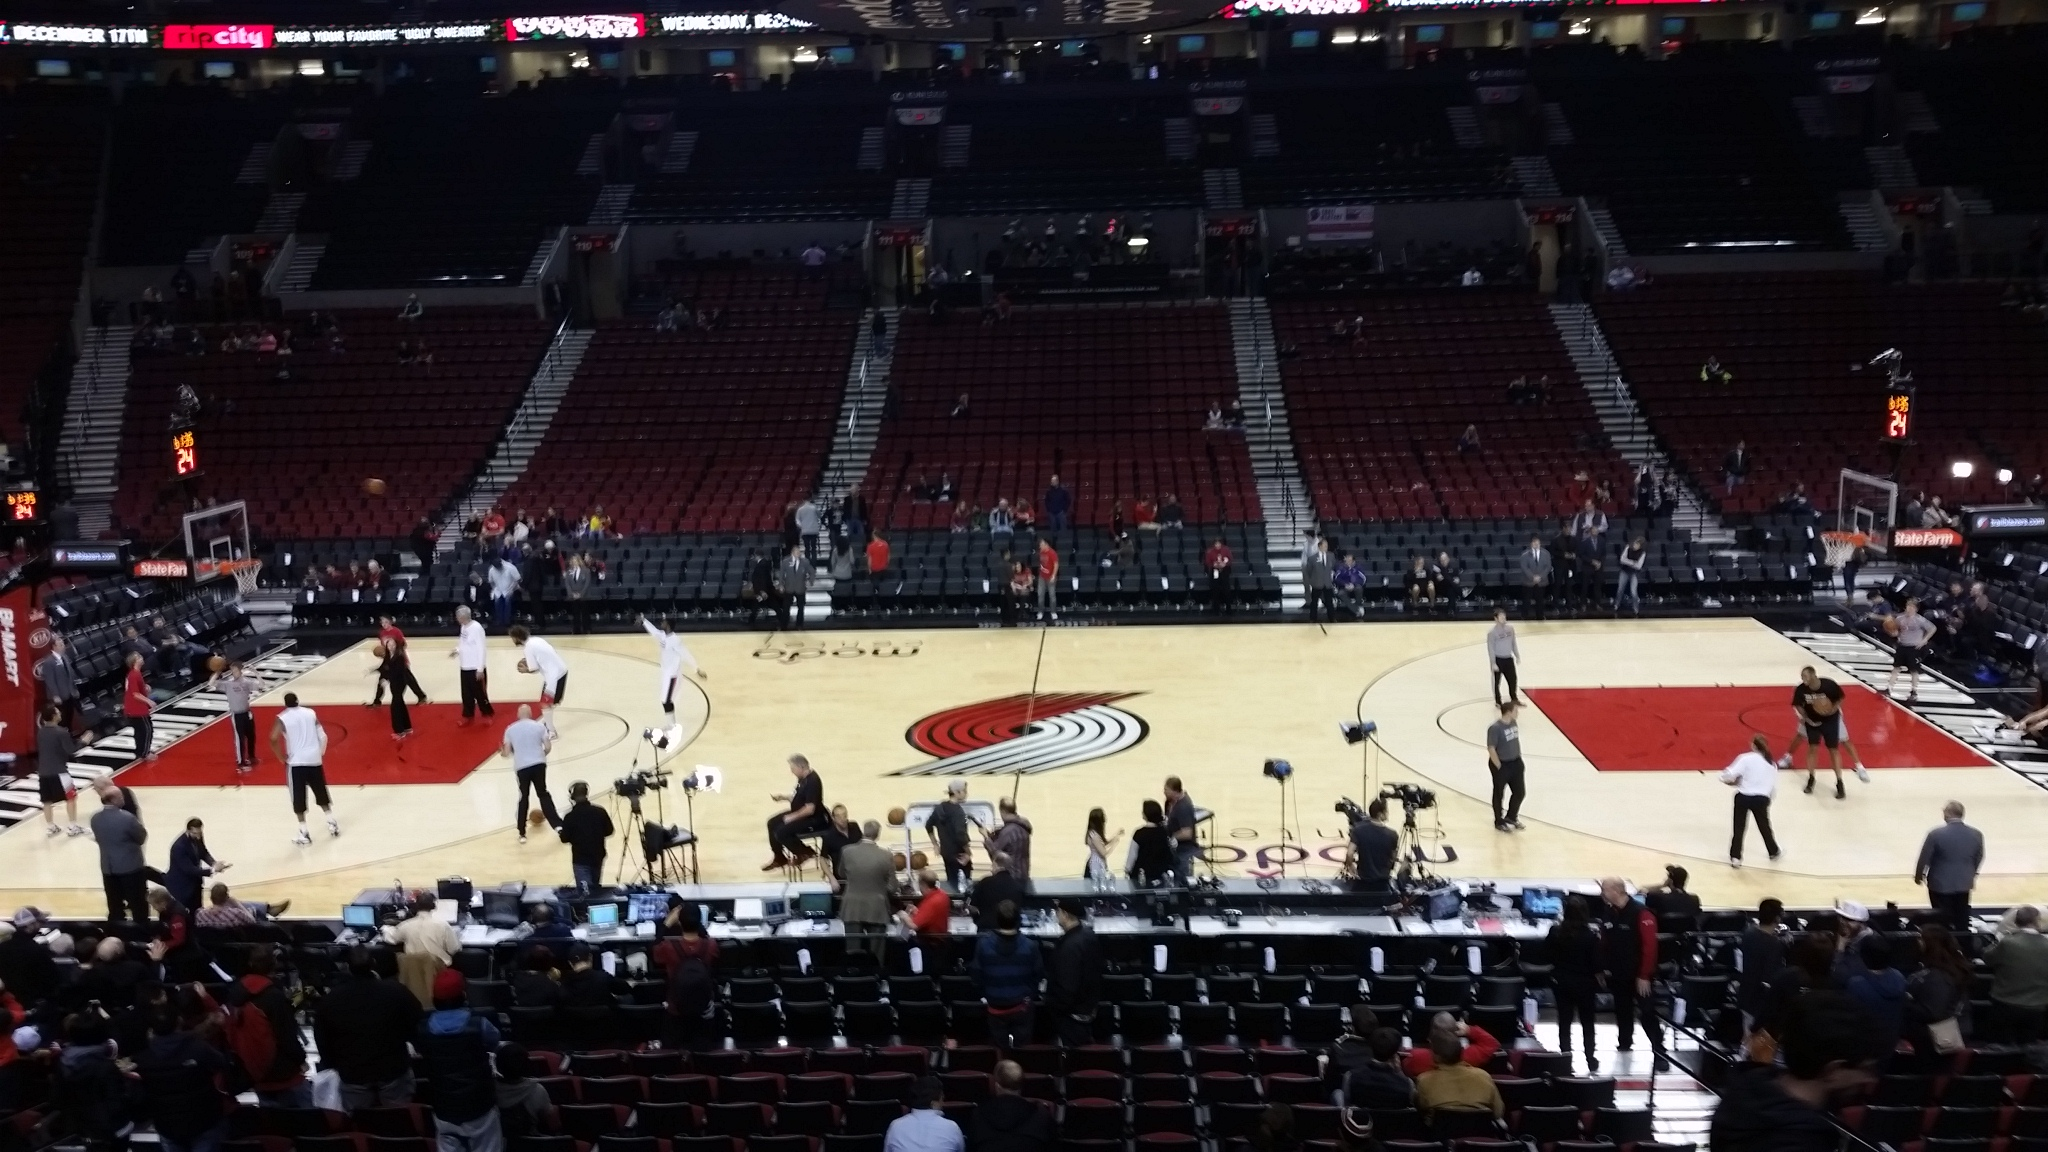 Portland Trail Blazers vs. San Antonio Spurs: In-Arena Report from ...